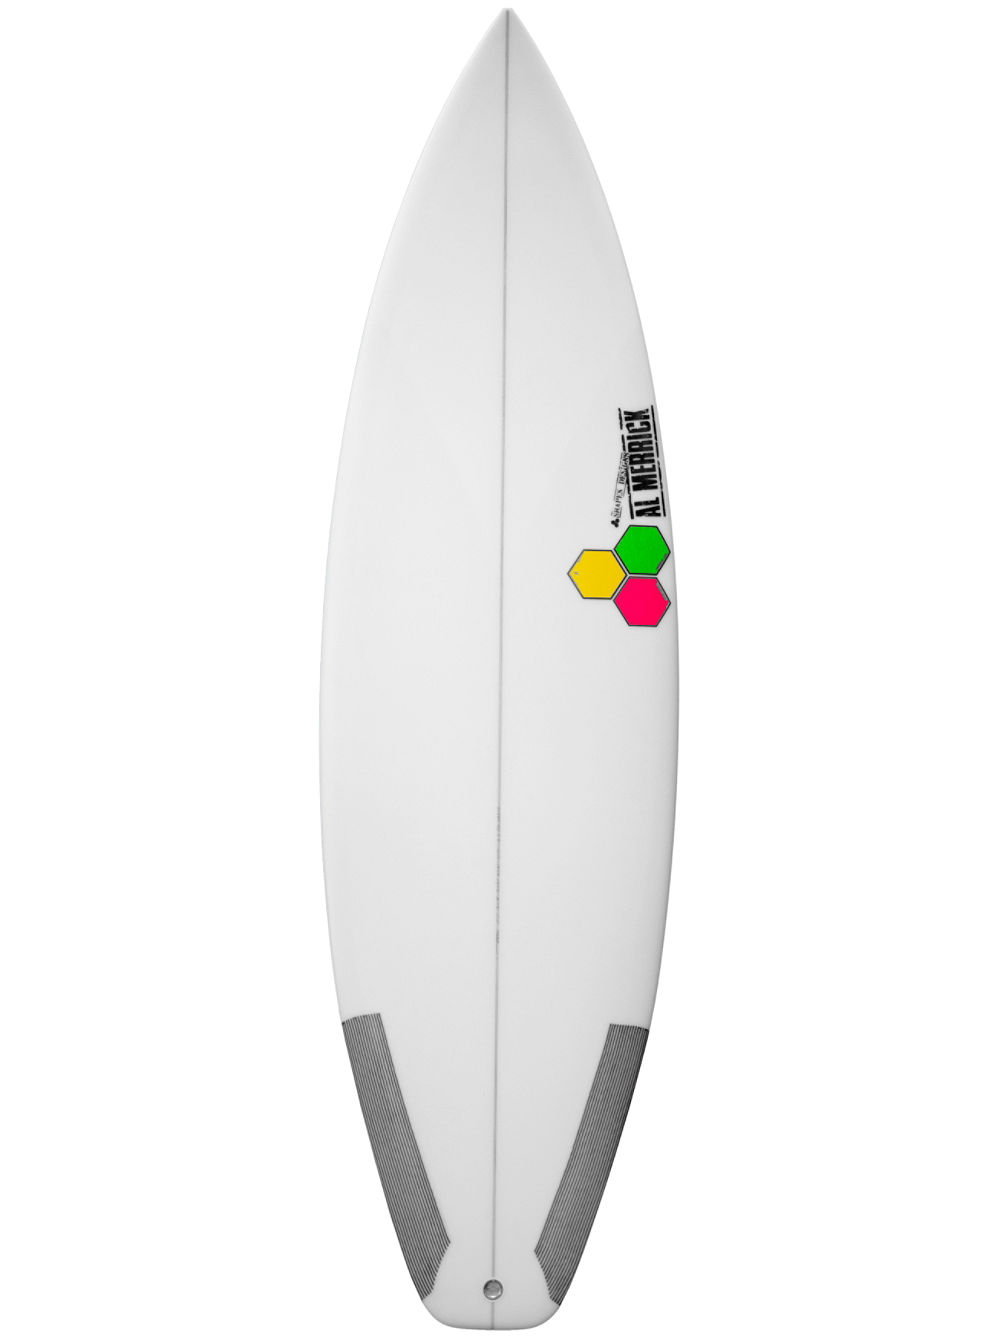 Channel Island New Flyer 6'2 Surfboard